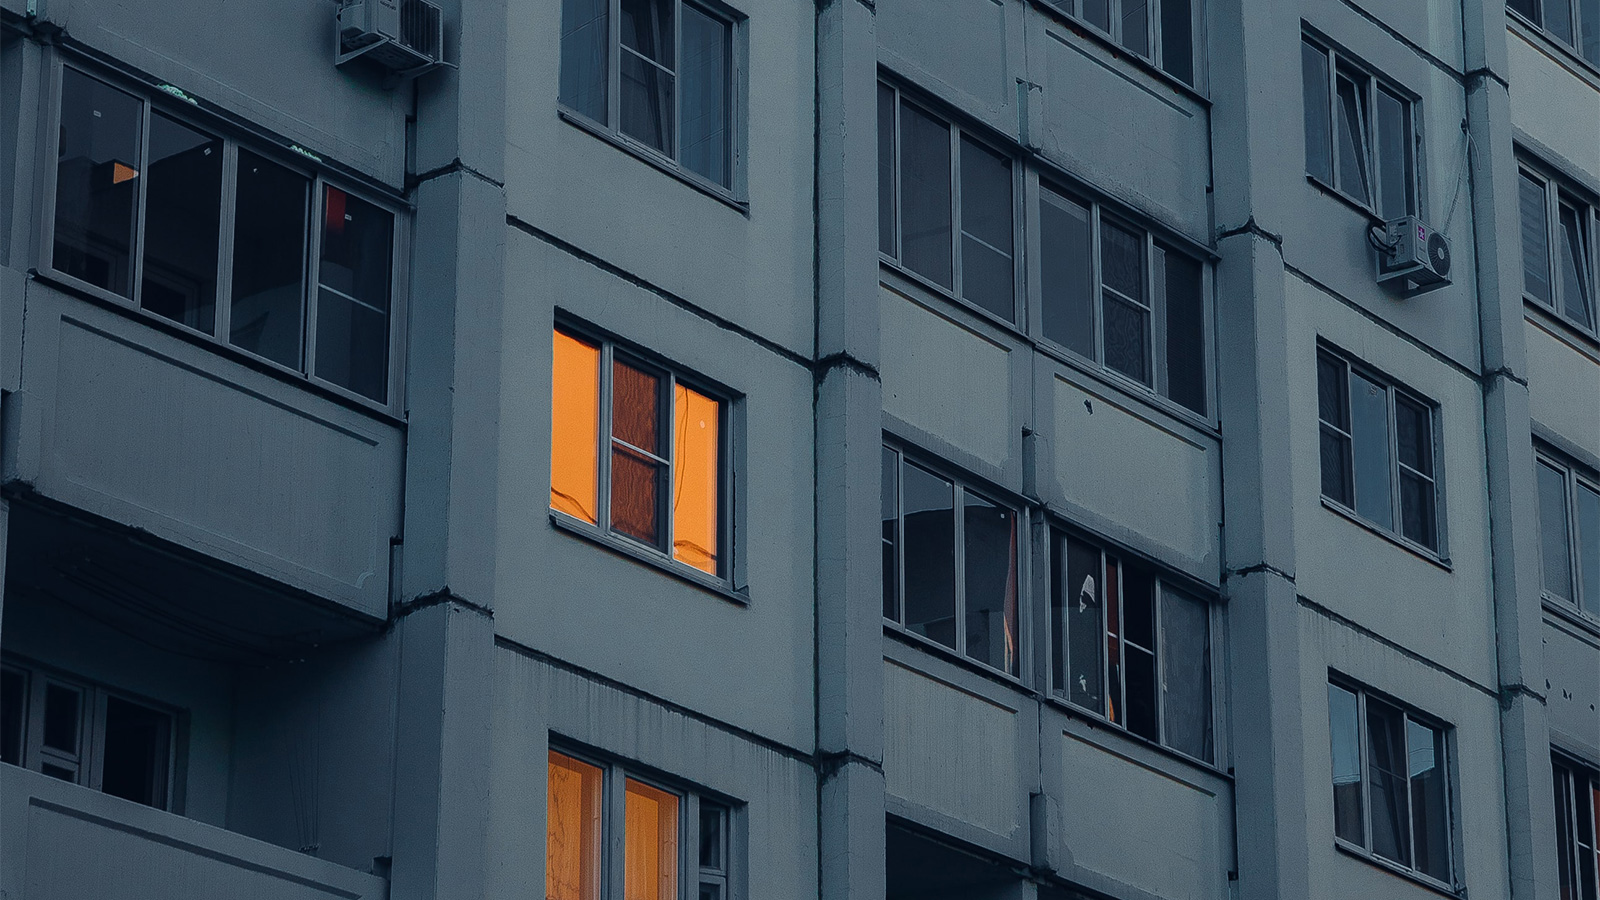 A window lit up in an apartment building at dusk.